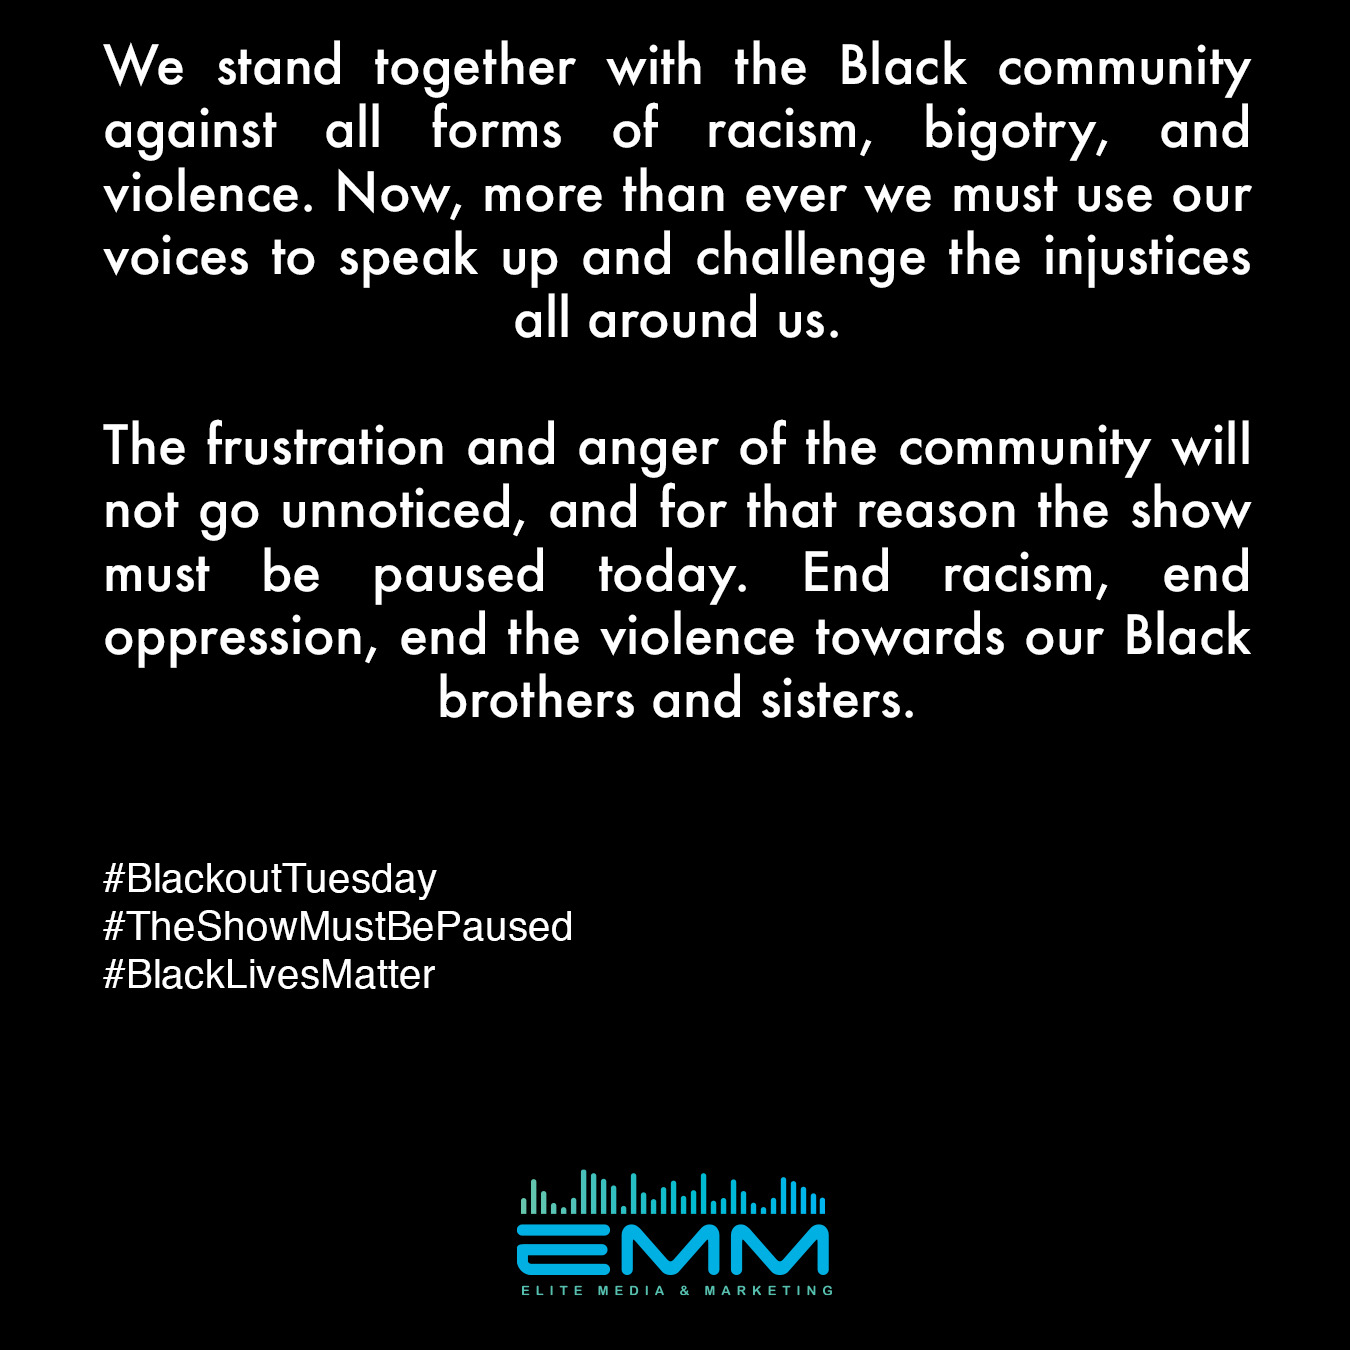 We stand together with the Black community against all forms of racism, bigotry, and violence. -EMM